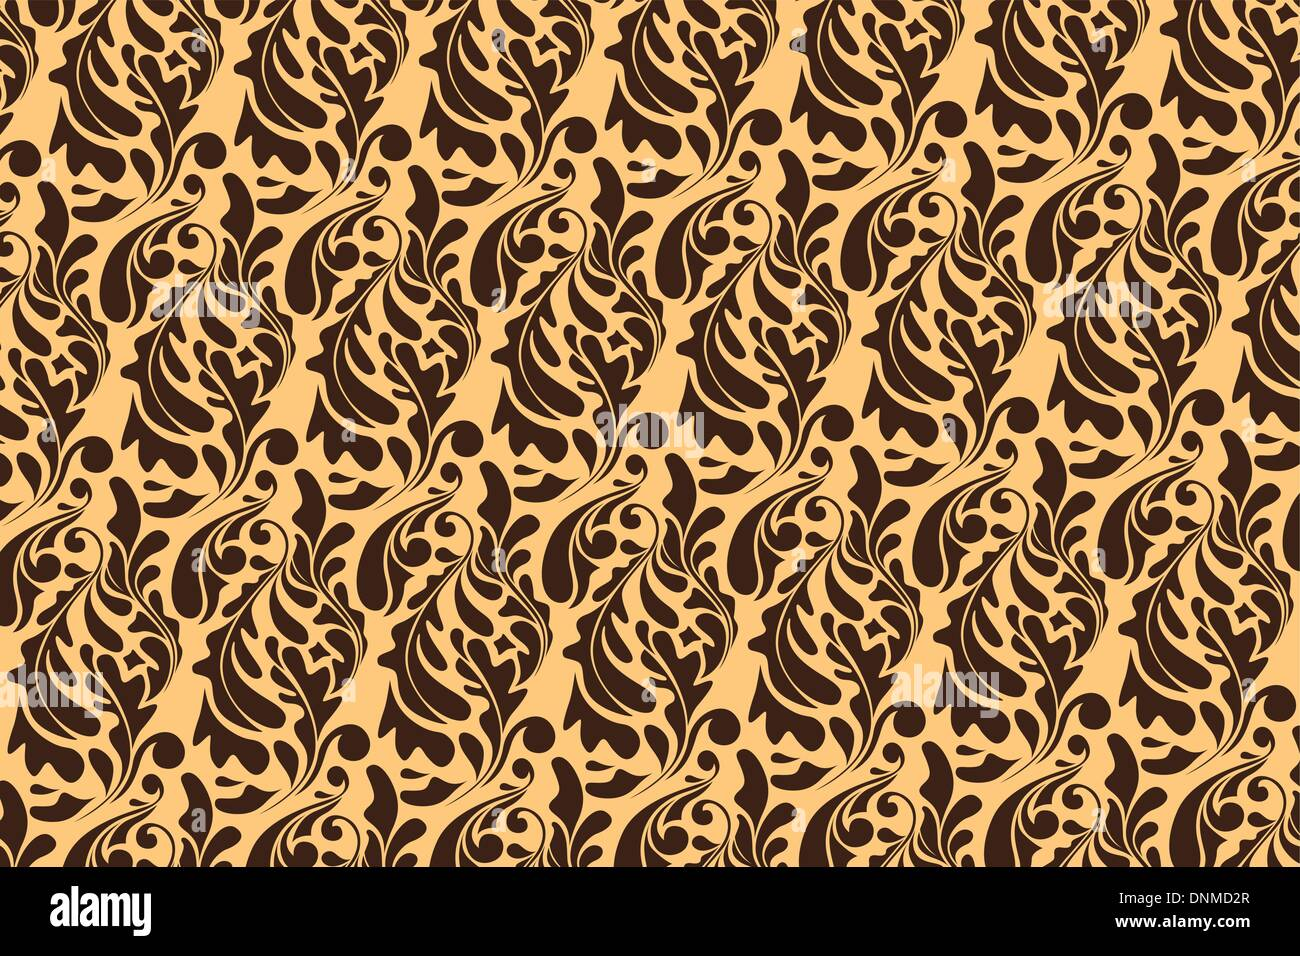 A vector illustration of a wallpaper pattern - Stock Image